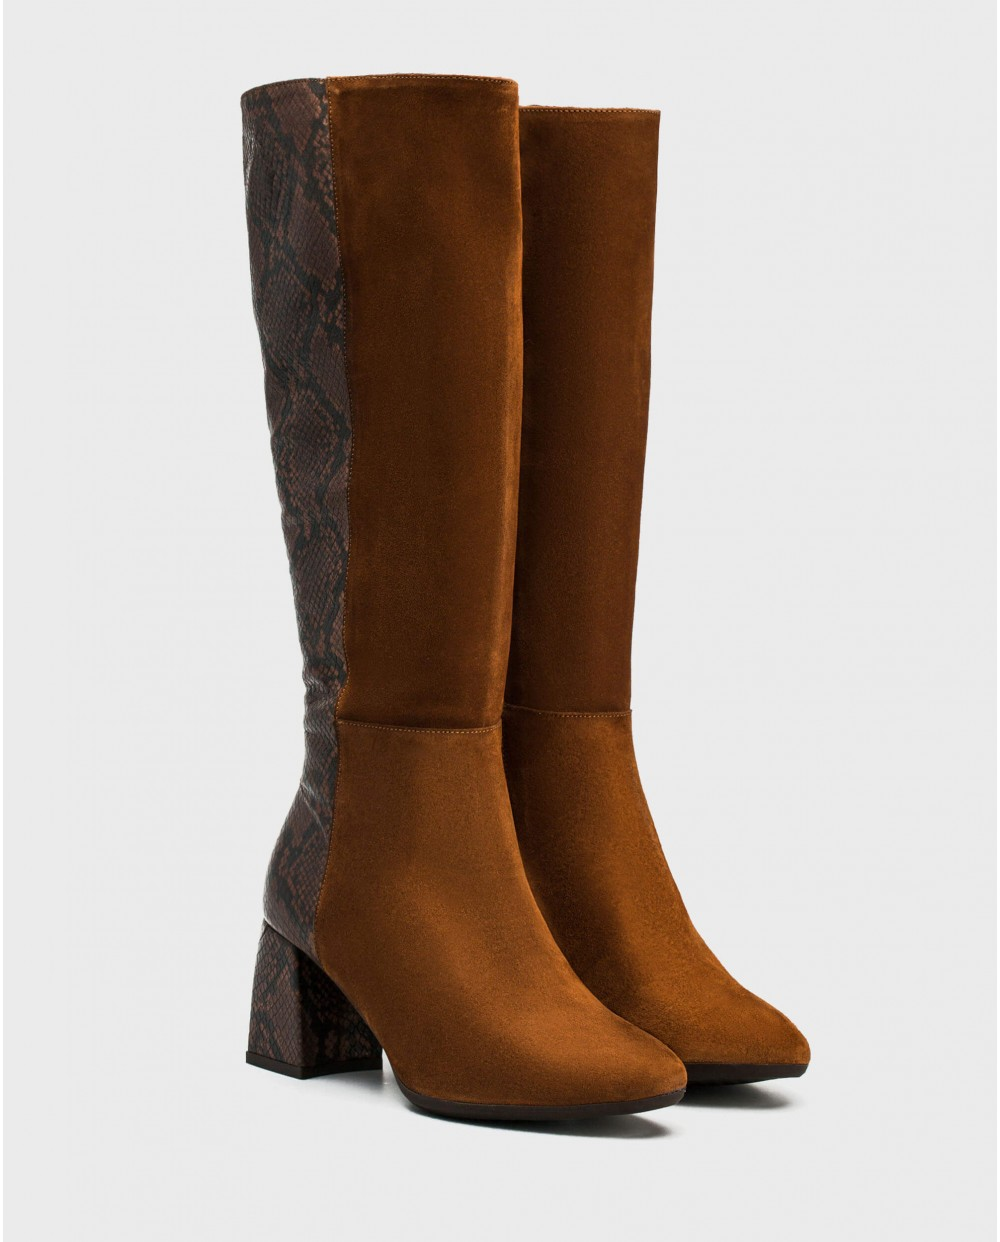 Wonders-Boots-Bi/leather boot with animal print